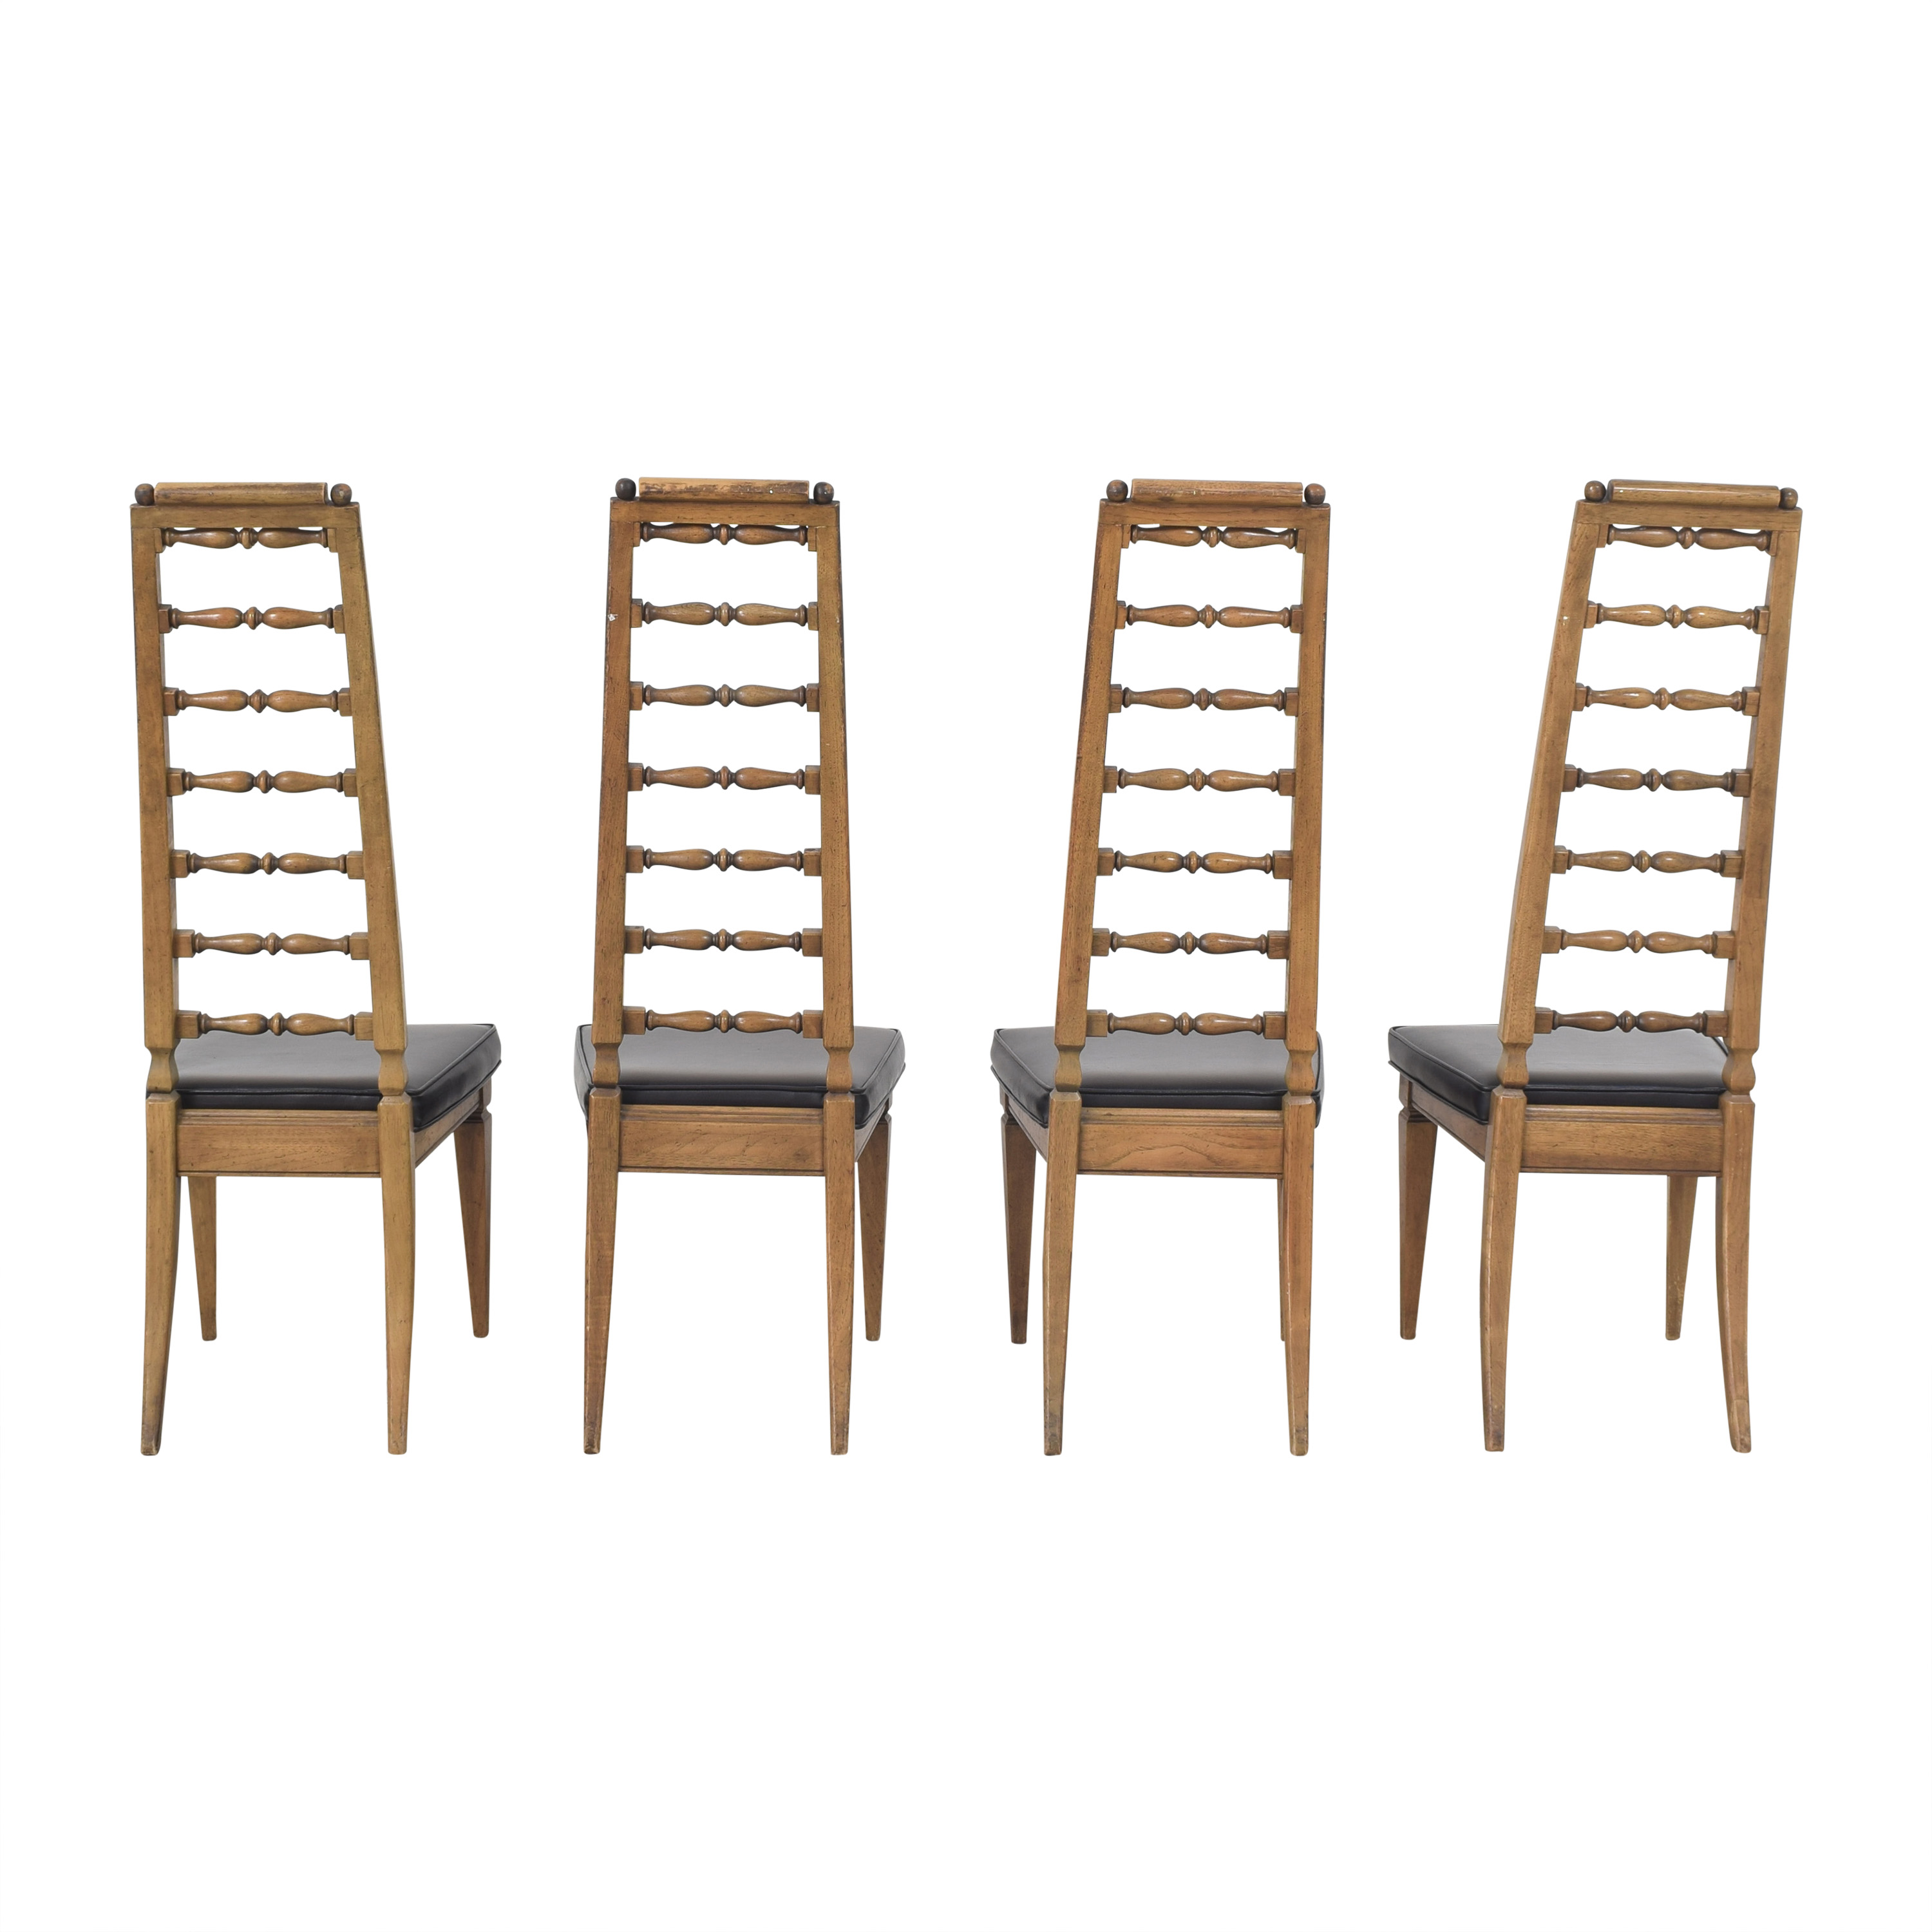 Thomasville Thomasville Tall Ladder Back Dining Chairs discount